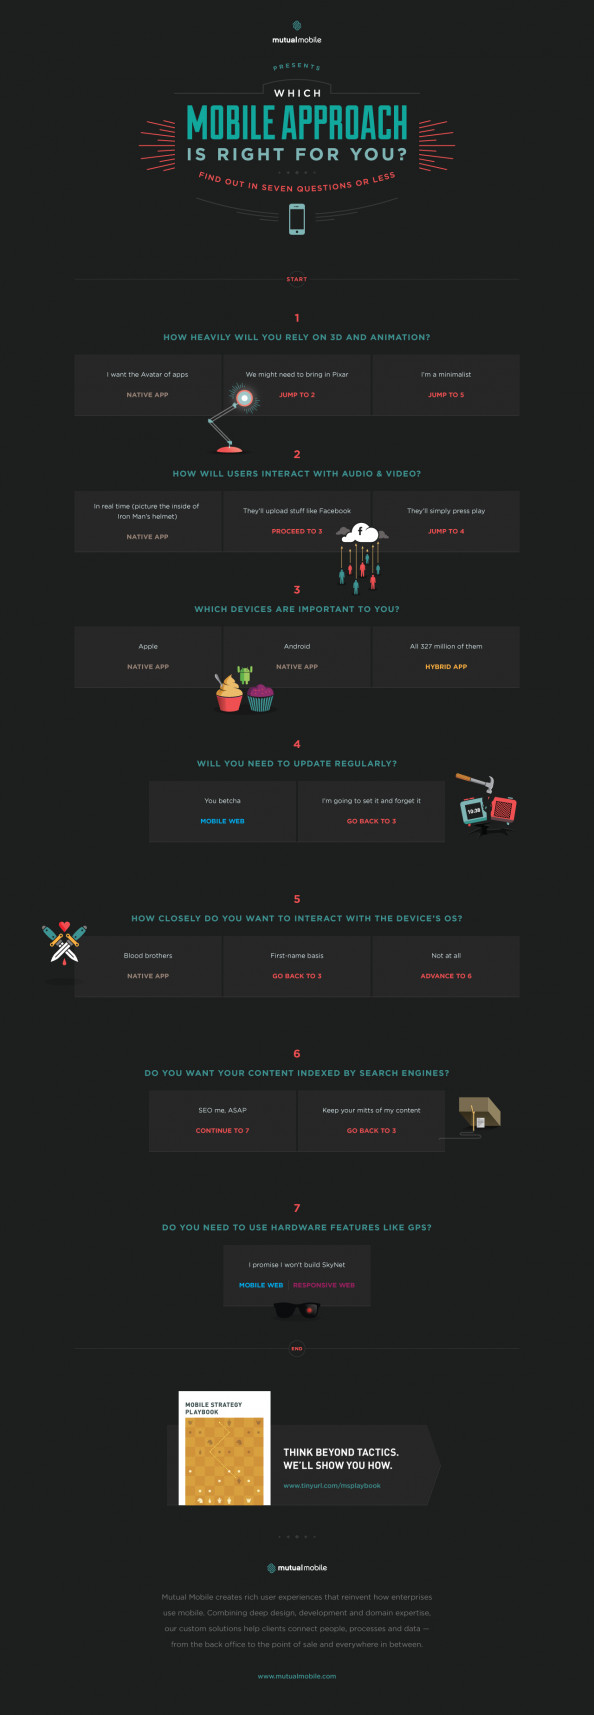 Which Mobile Approach Is Right For You? Infographic